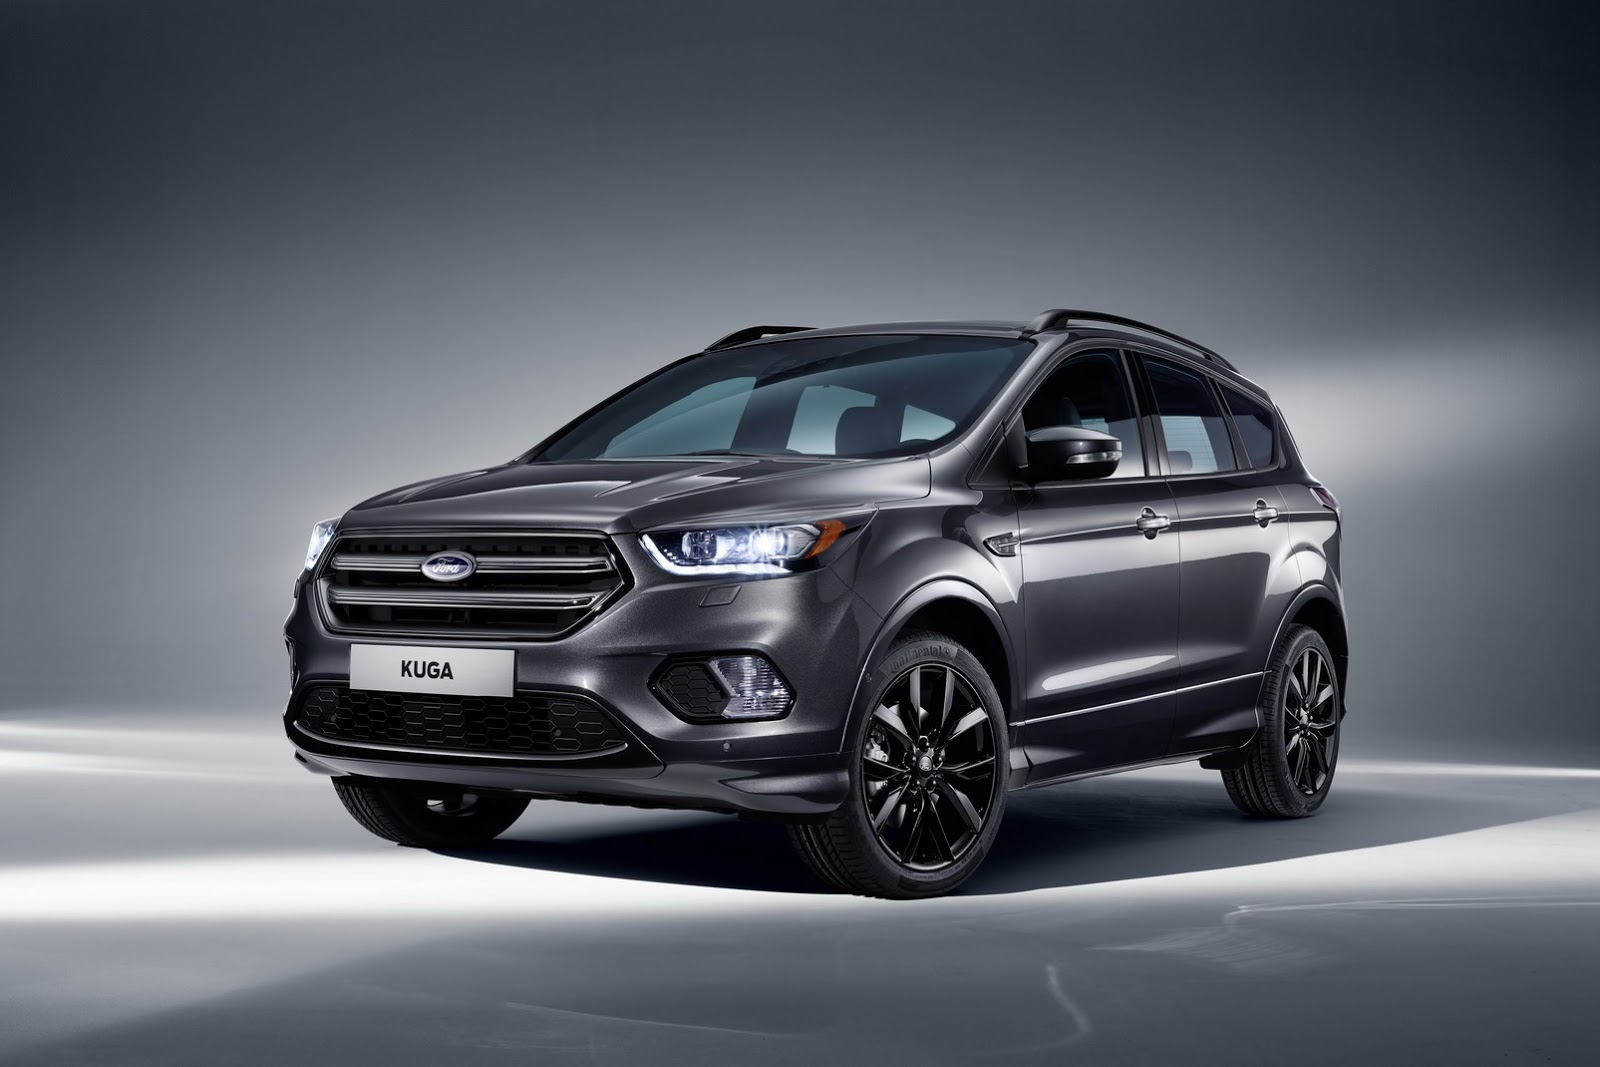 Km 3 Release Date >> Ford Kuga 2017 – ceny SUV-a w Polsce - Antyradio.pl